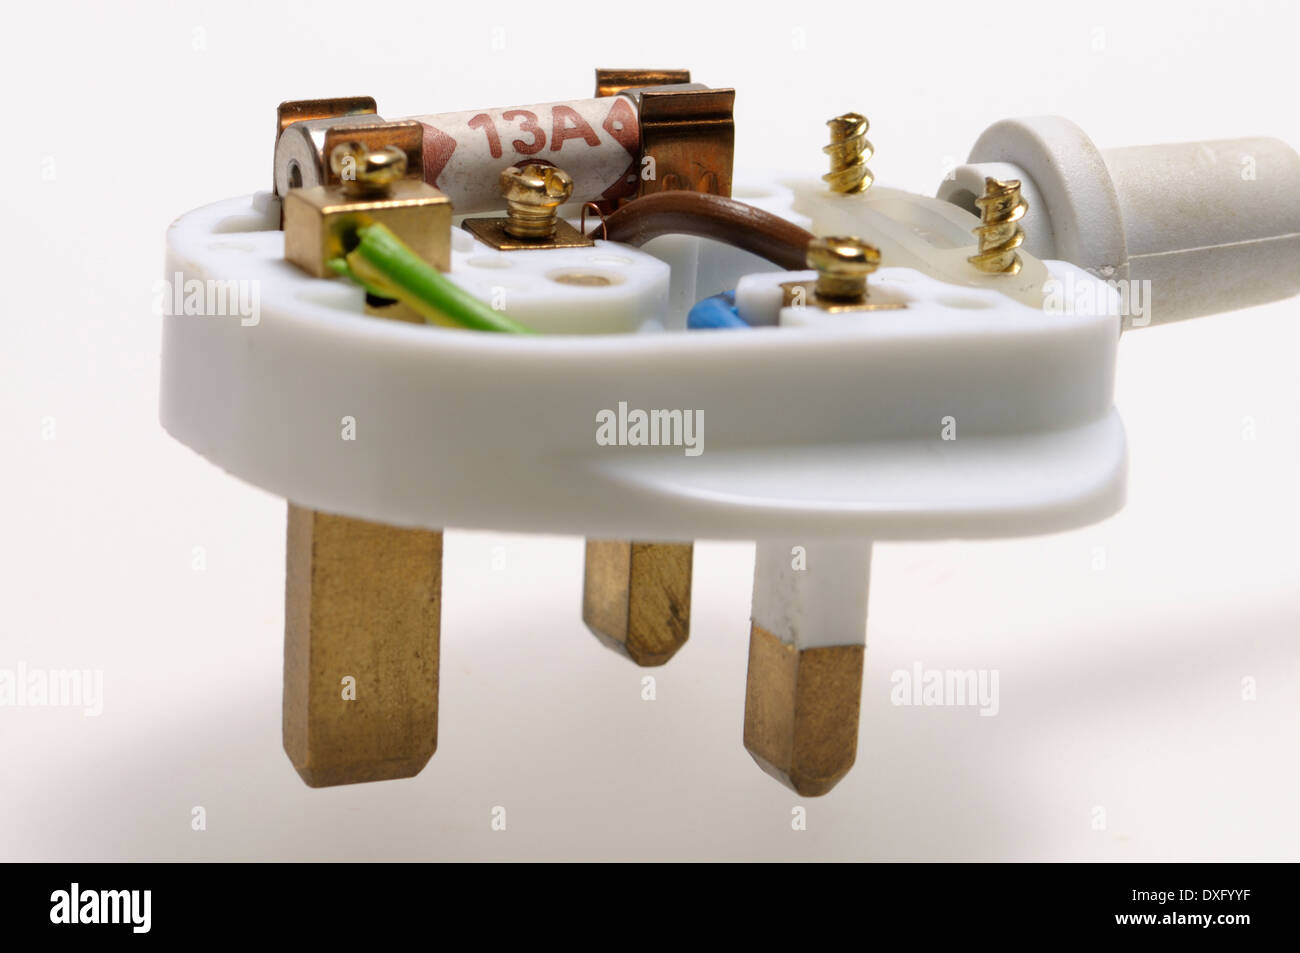 British 3-pin electric plug, with top removed to show fuse and wiring - Stock Image